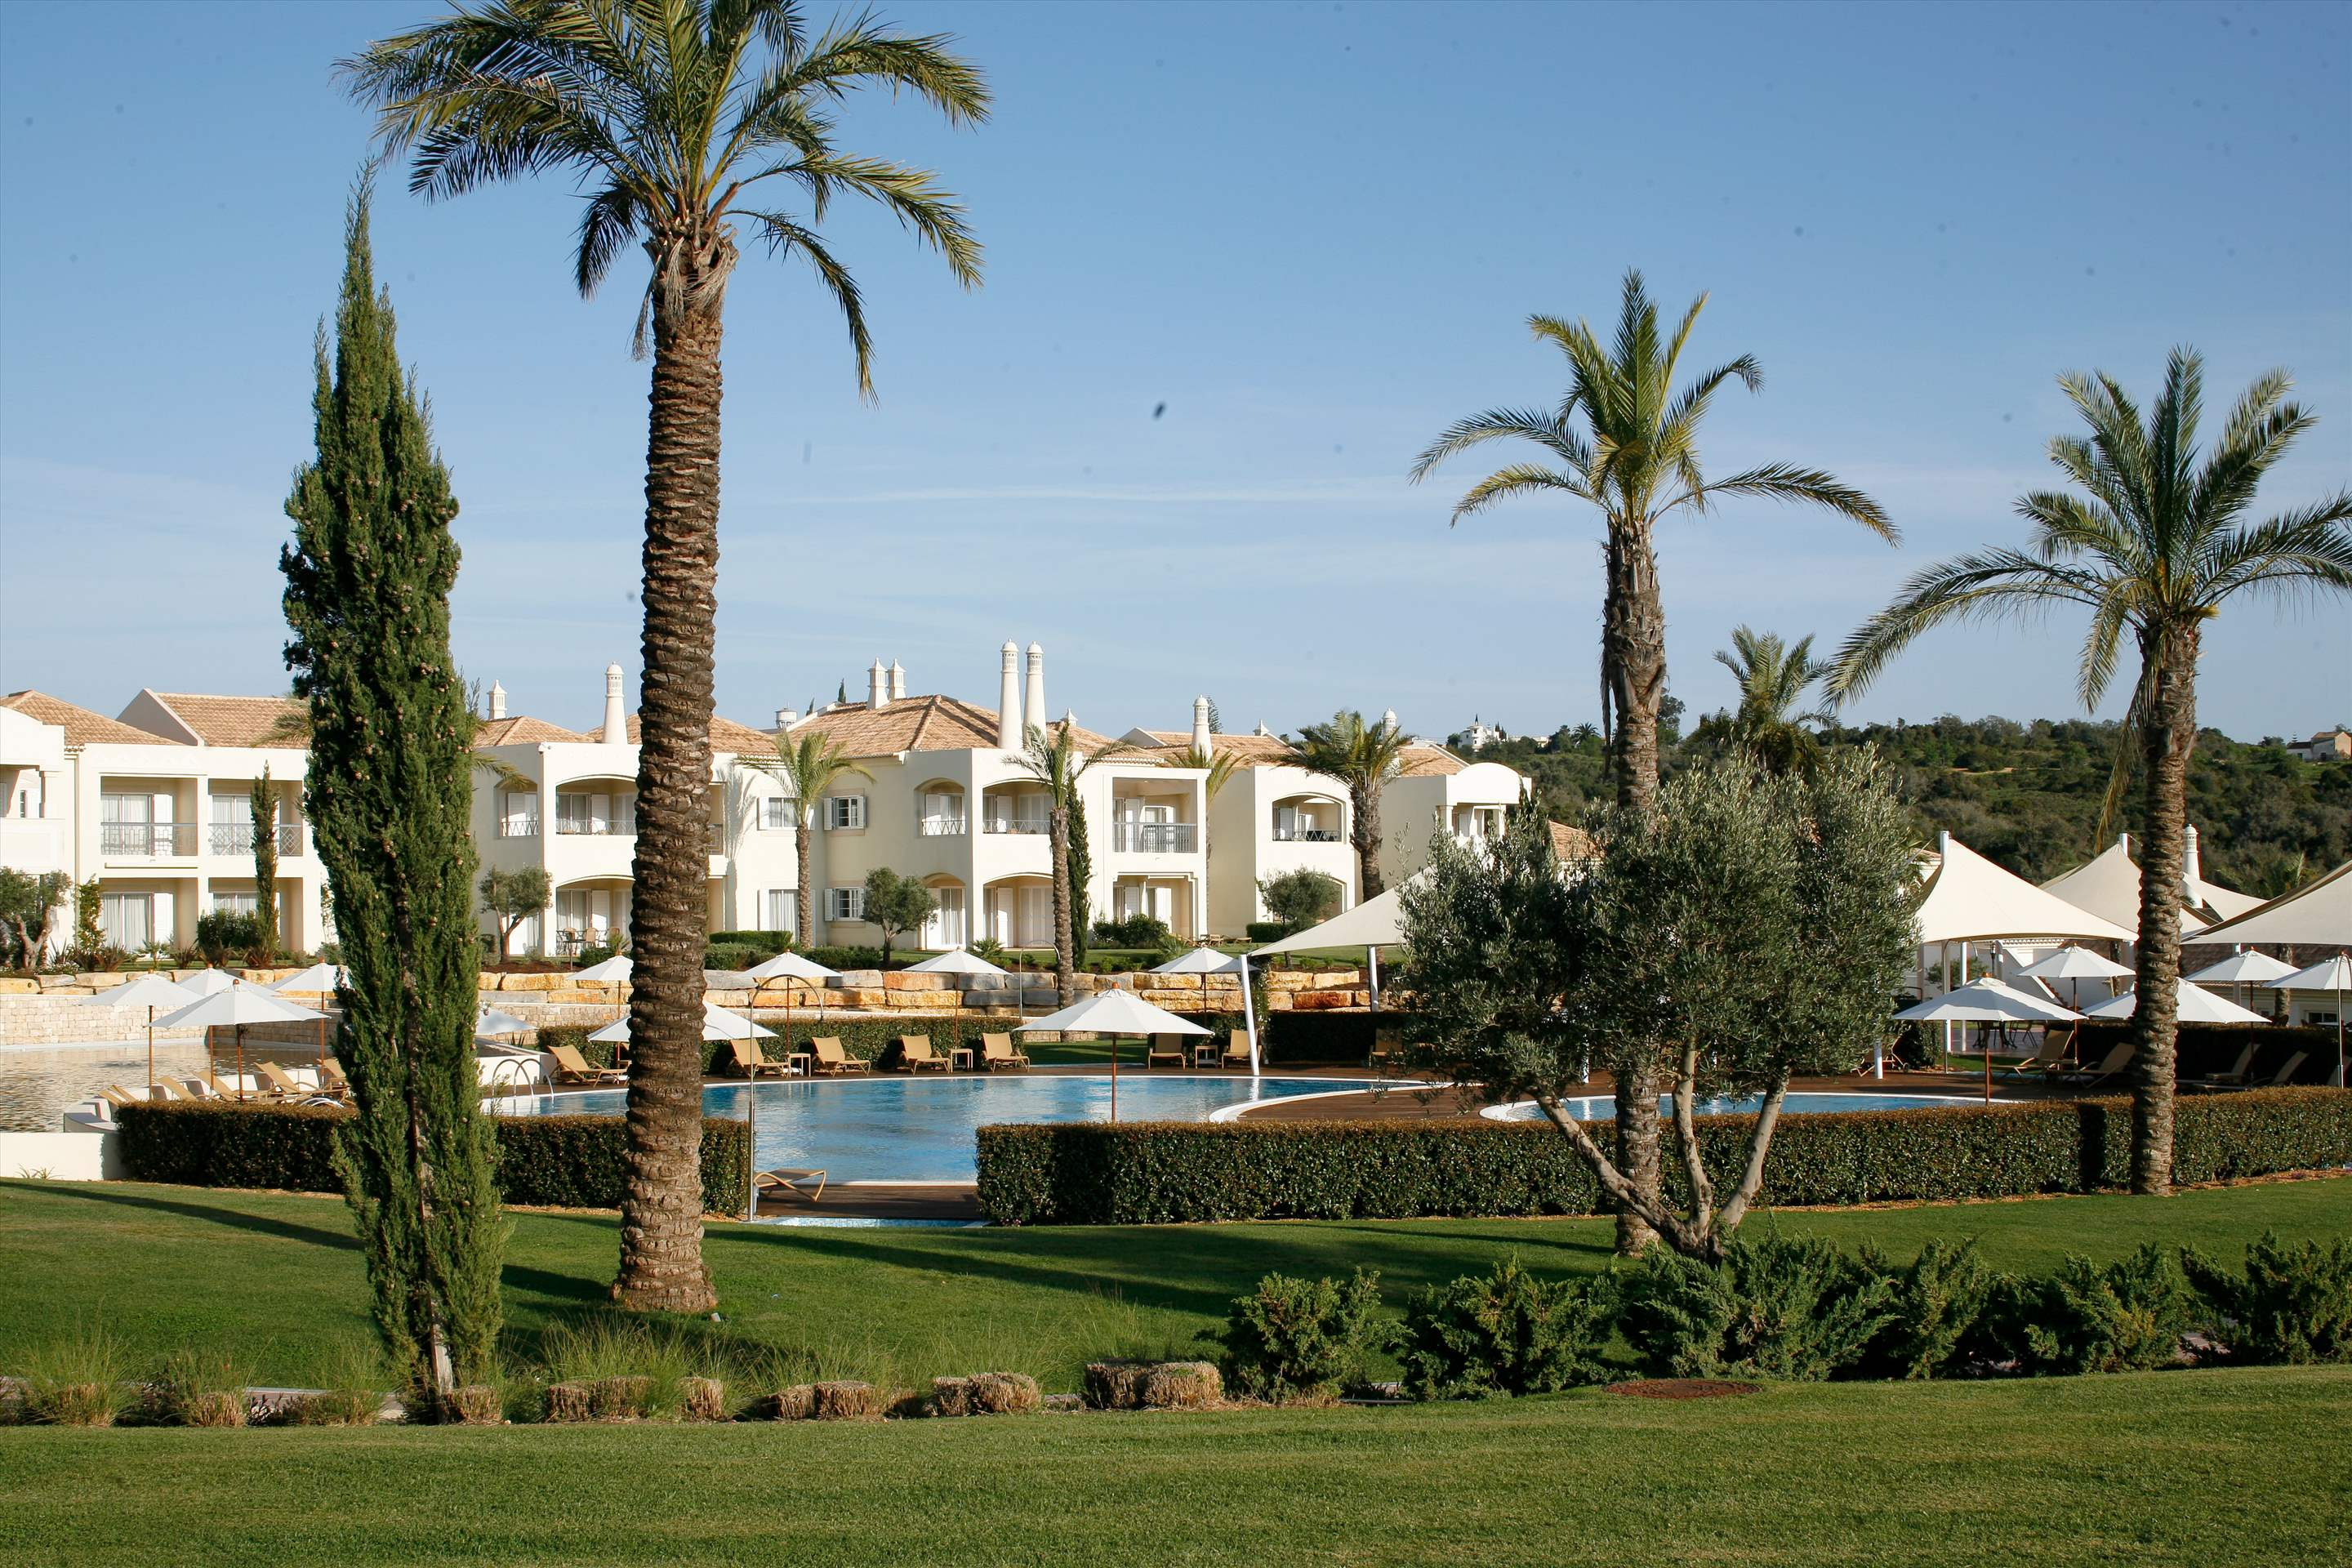 Vale dOliveiras Hotel Double/ Twin Room BB Basis, 1 bedroom hotel in Vale d'Oliveiras Resort & Spa, Algarve Photo #14